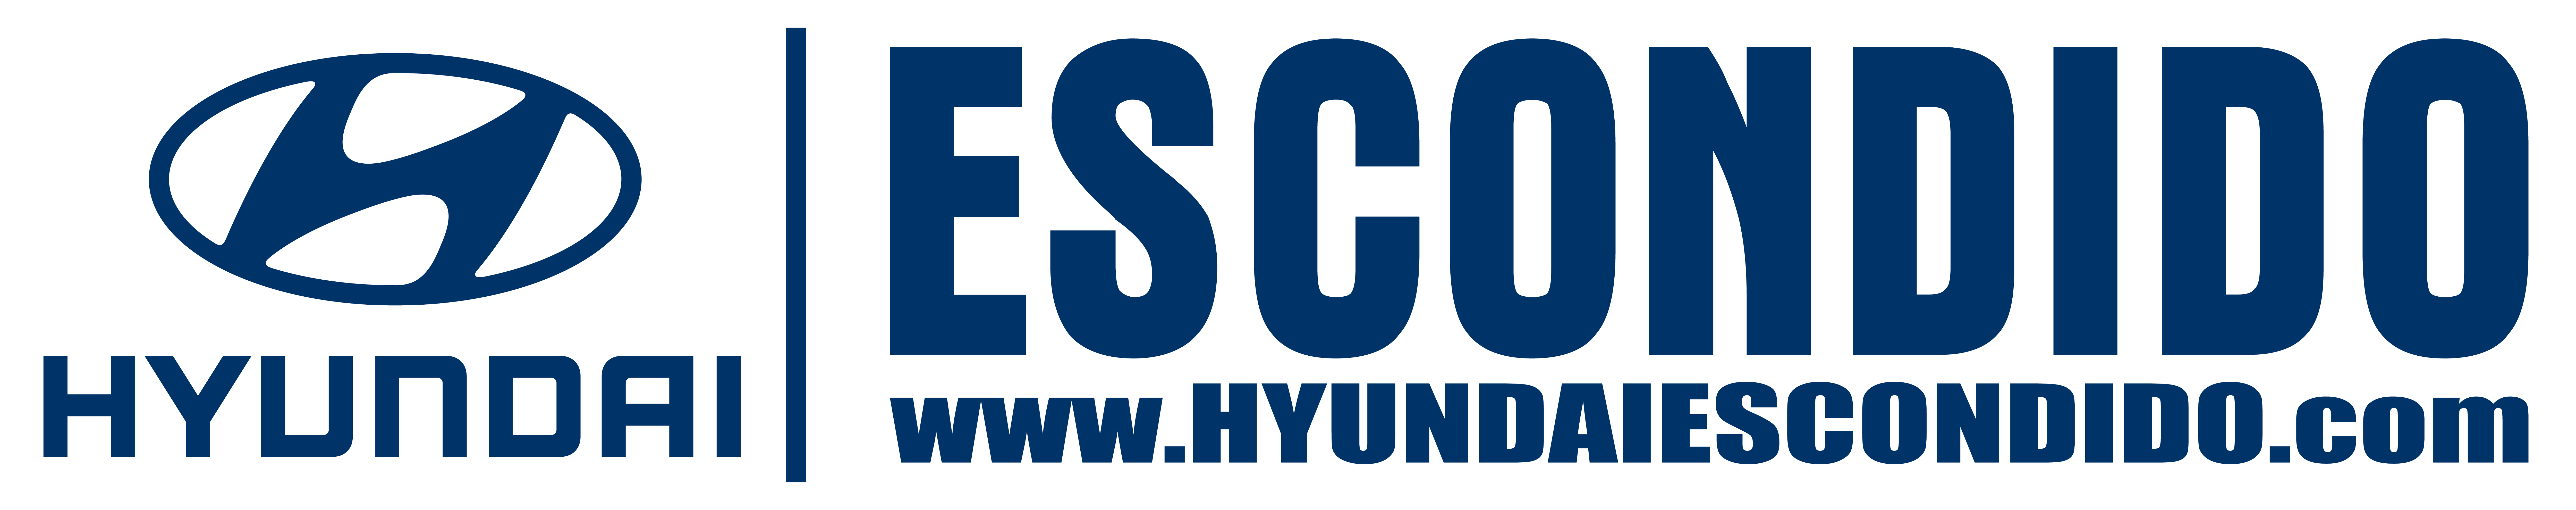 Hyundai of Escondido